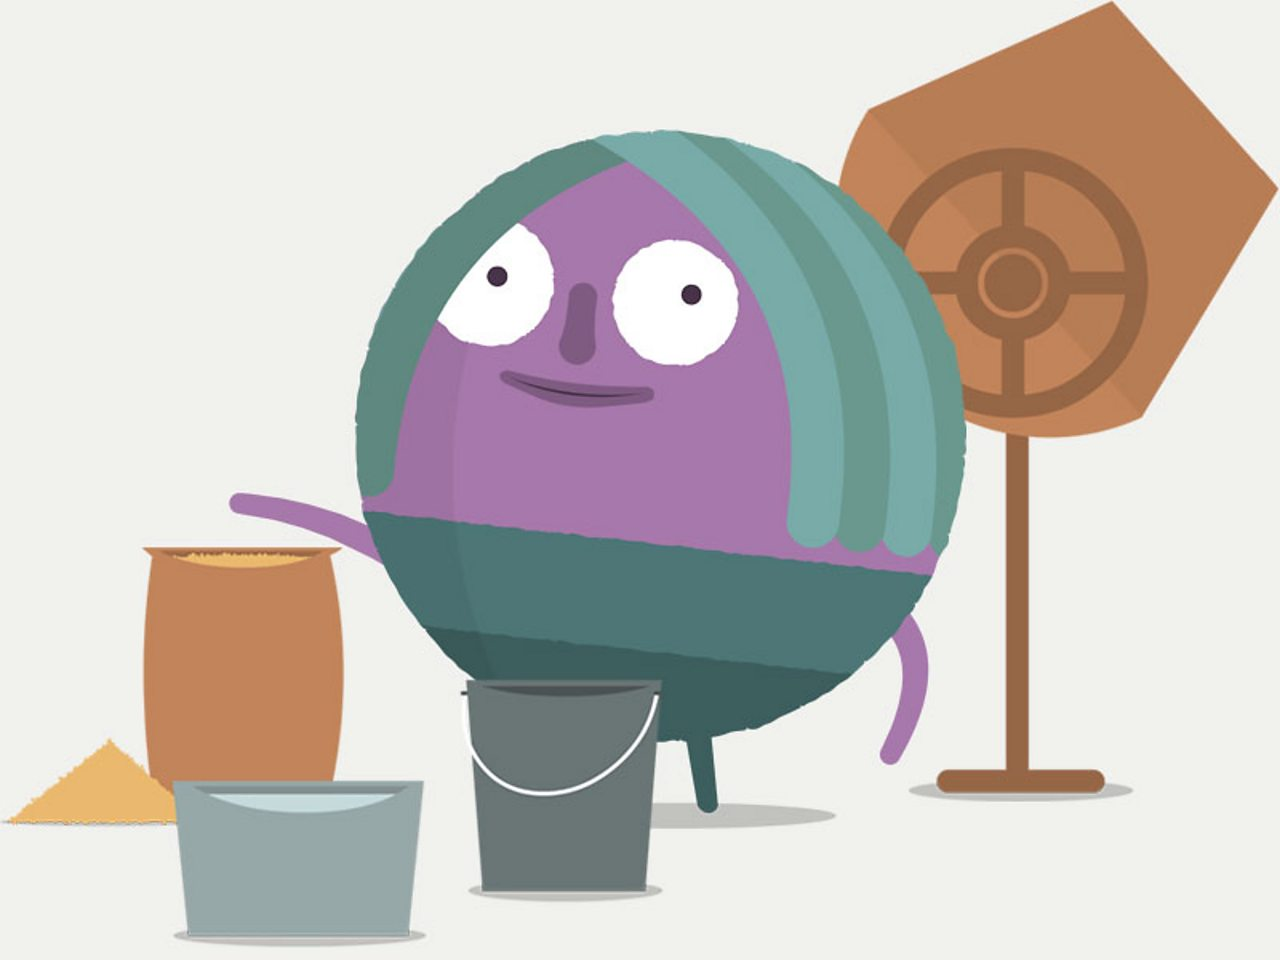 Circle character standing beside a cement mixer